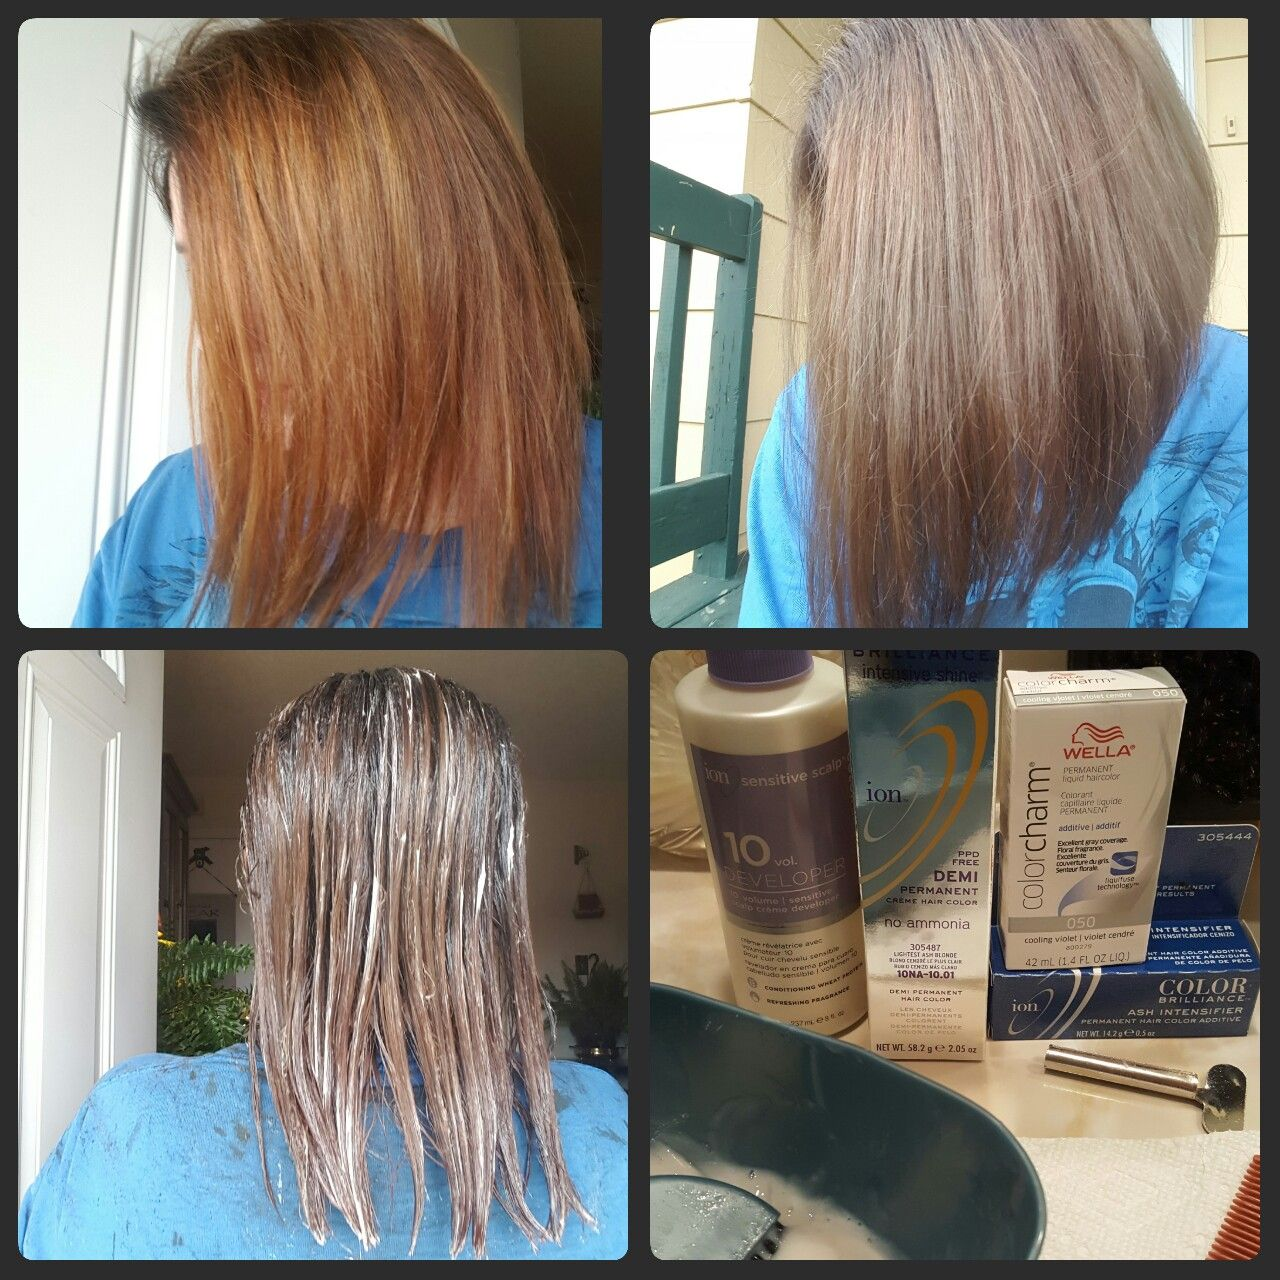 Orange Hair Do Care I Corrected It By Using 1 2 Ratio Of Ion Demi Permanent 10na And 10 Volume